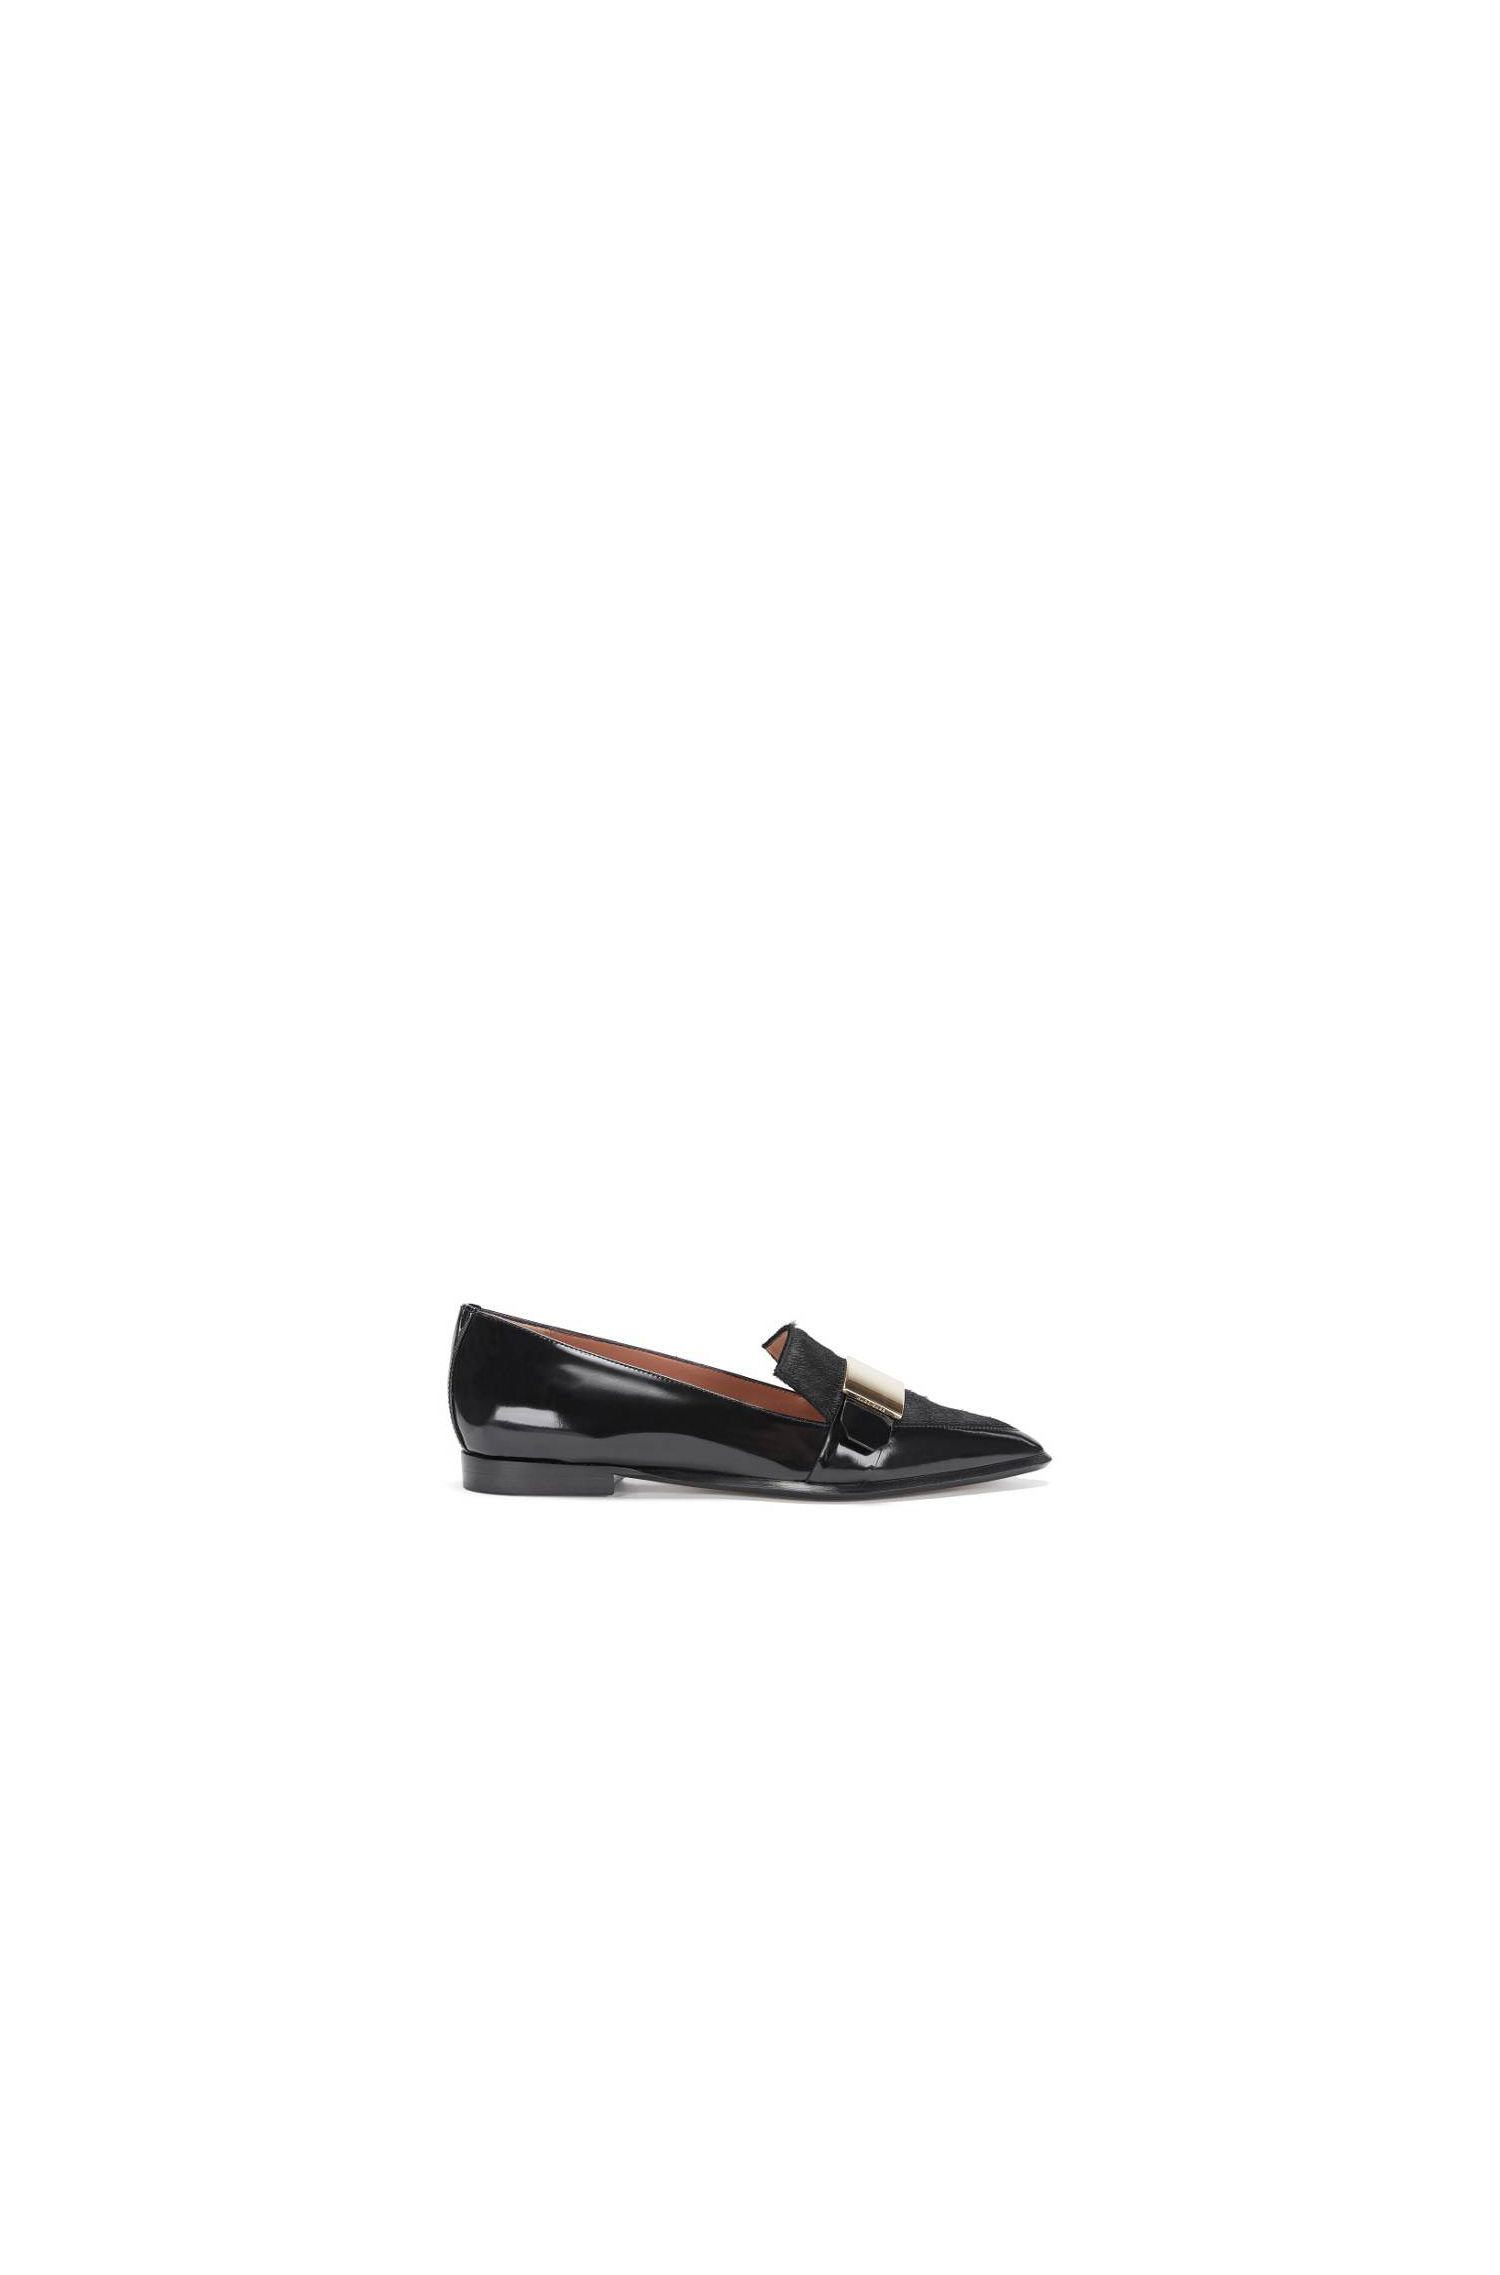 Loafer aus Lackleder mit Kalbsfell-Besatz: 'Pointy Loafer' LB'